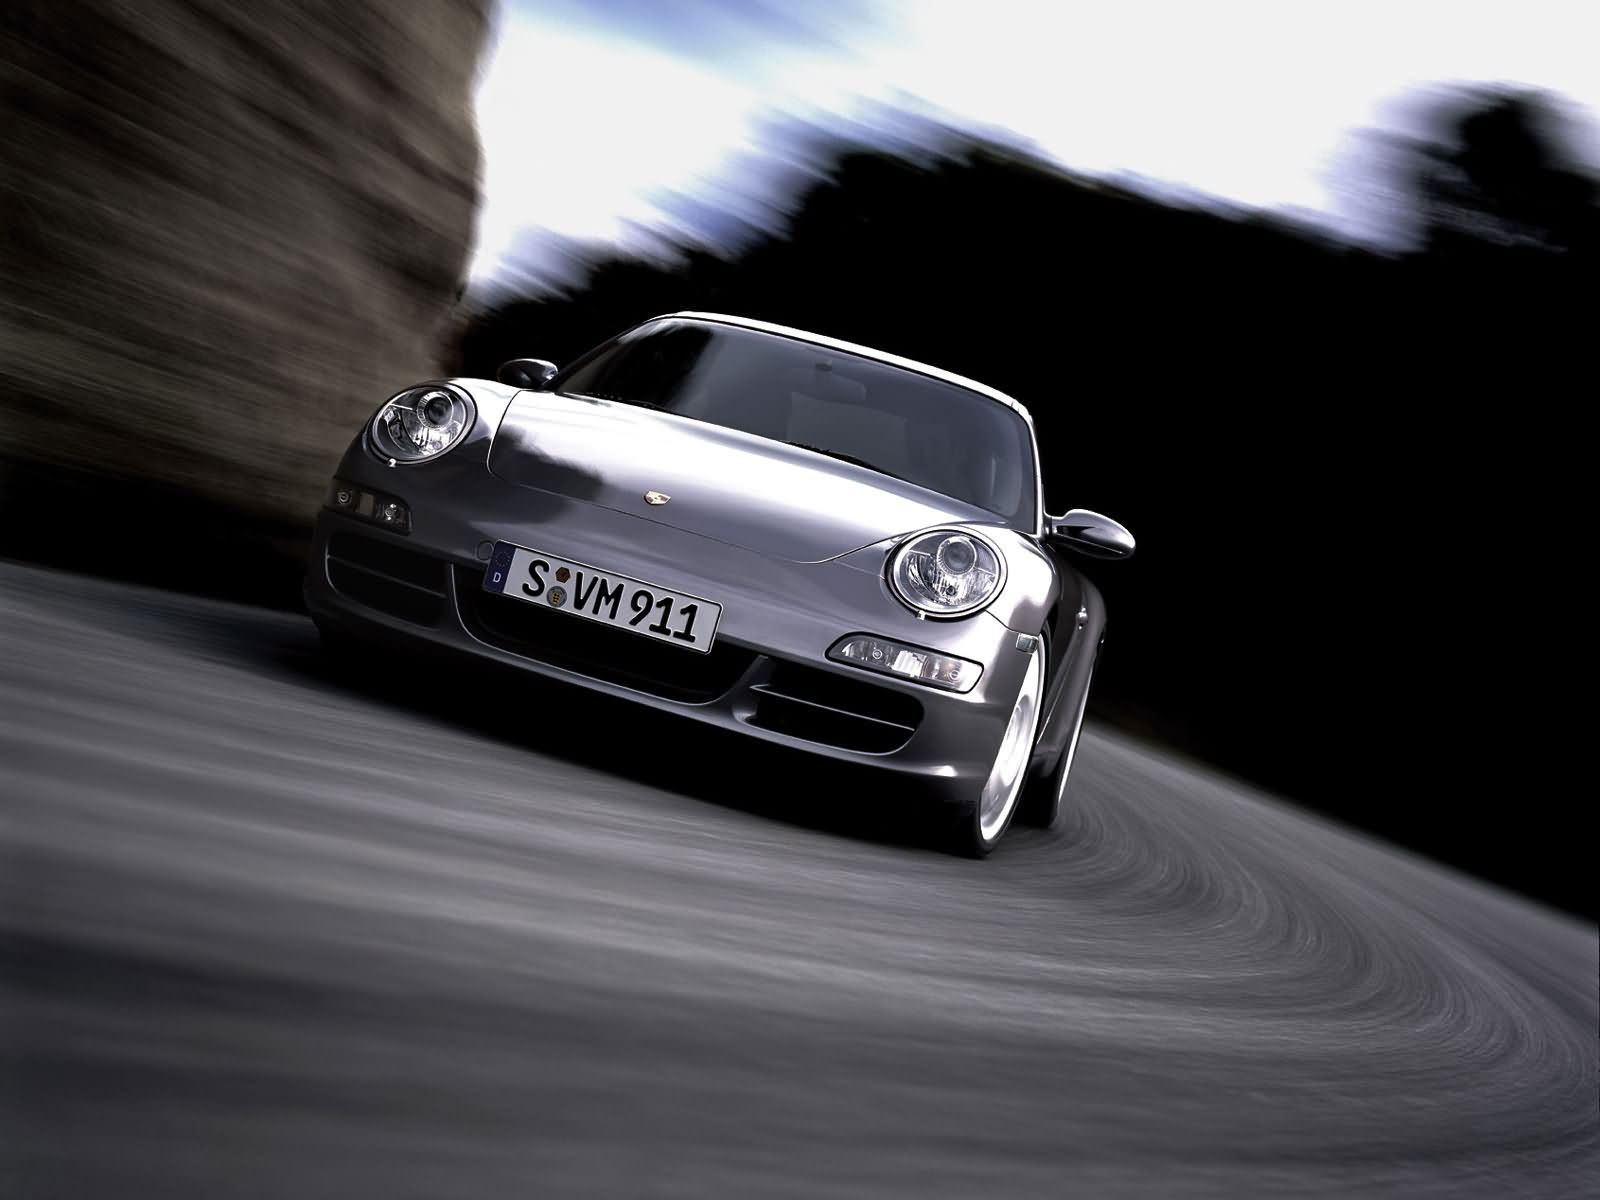 Porsche 997 911 Carrera S photo 18209